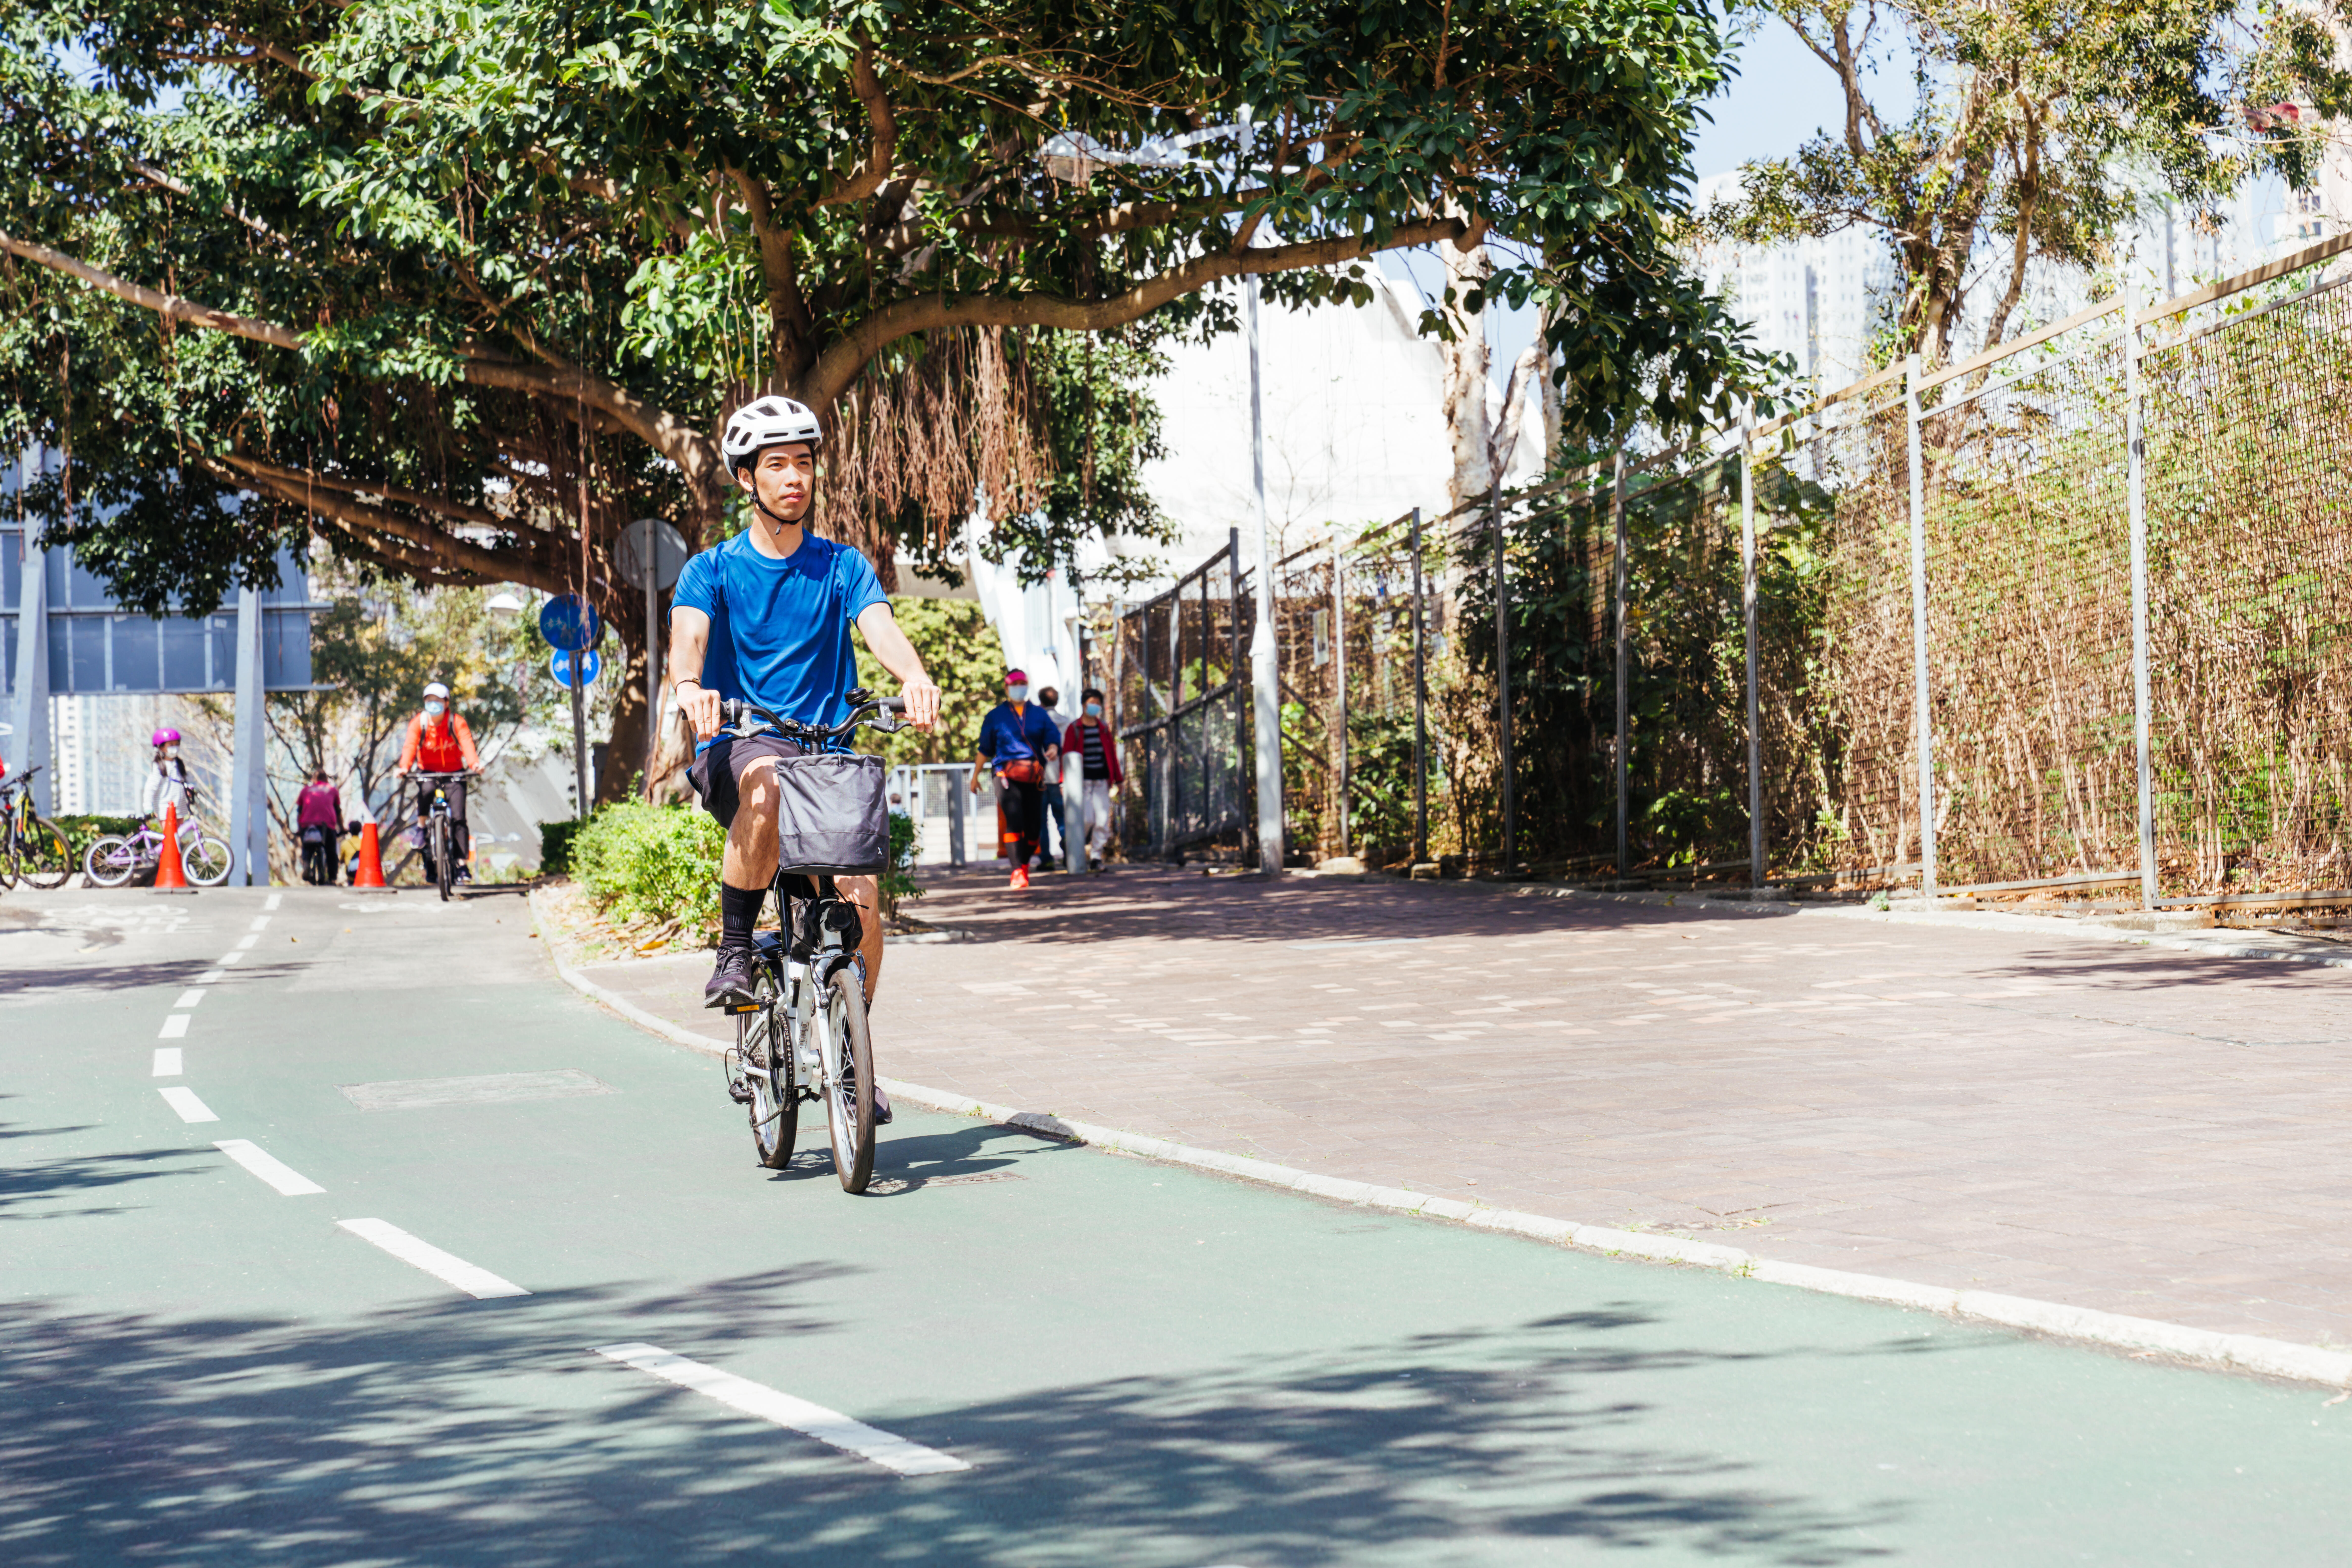 Biking can help you to improve your physical and emotional health